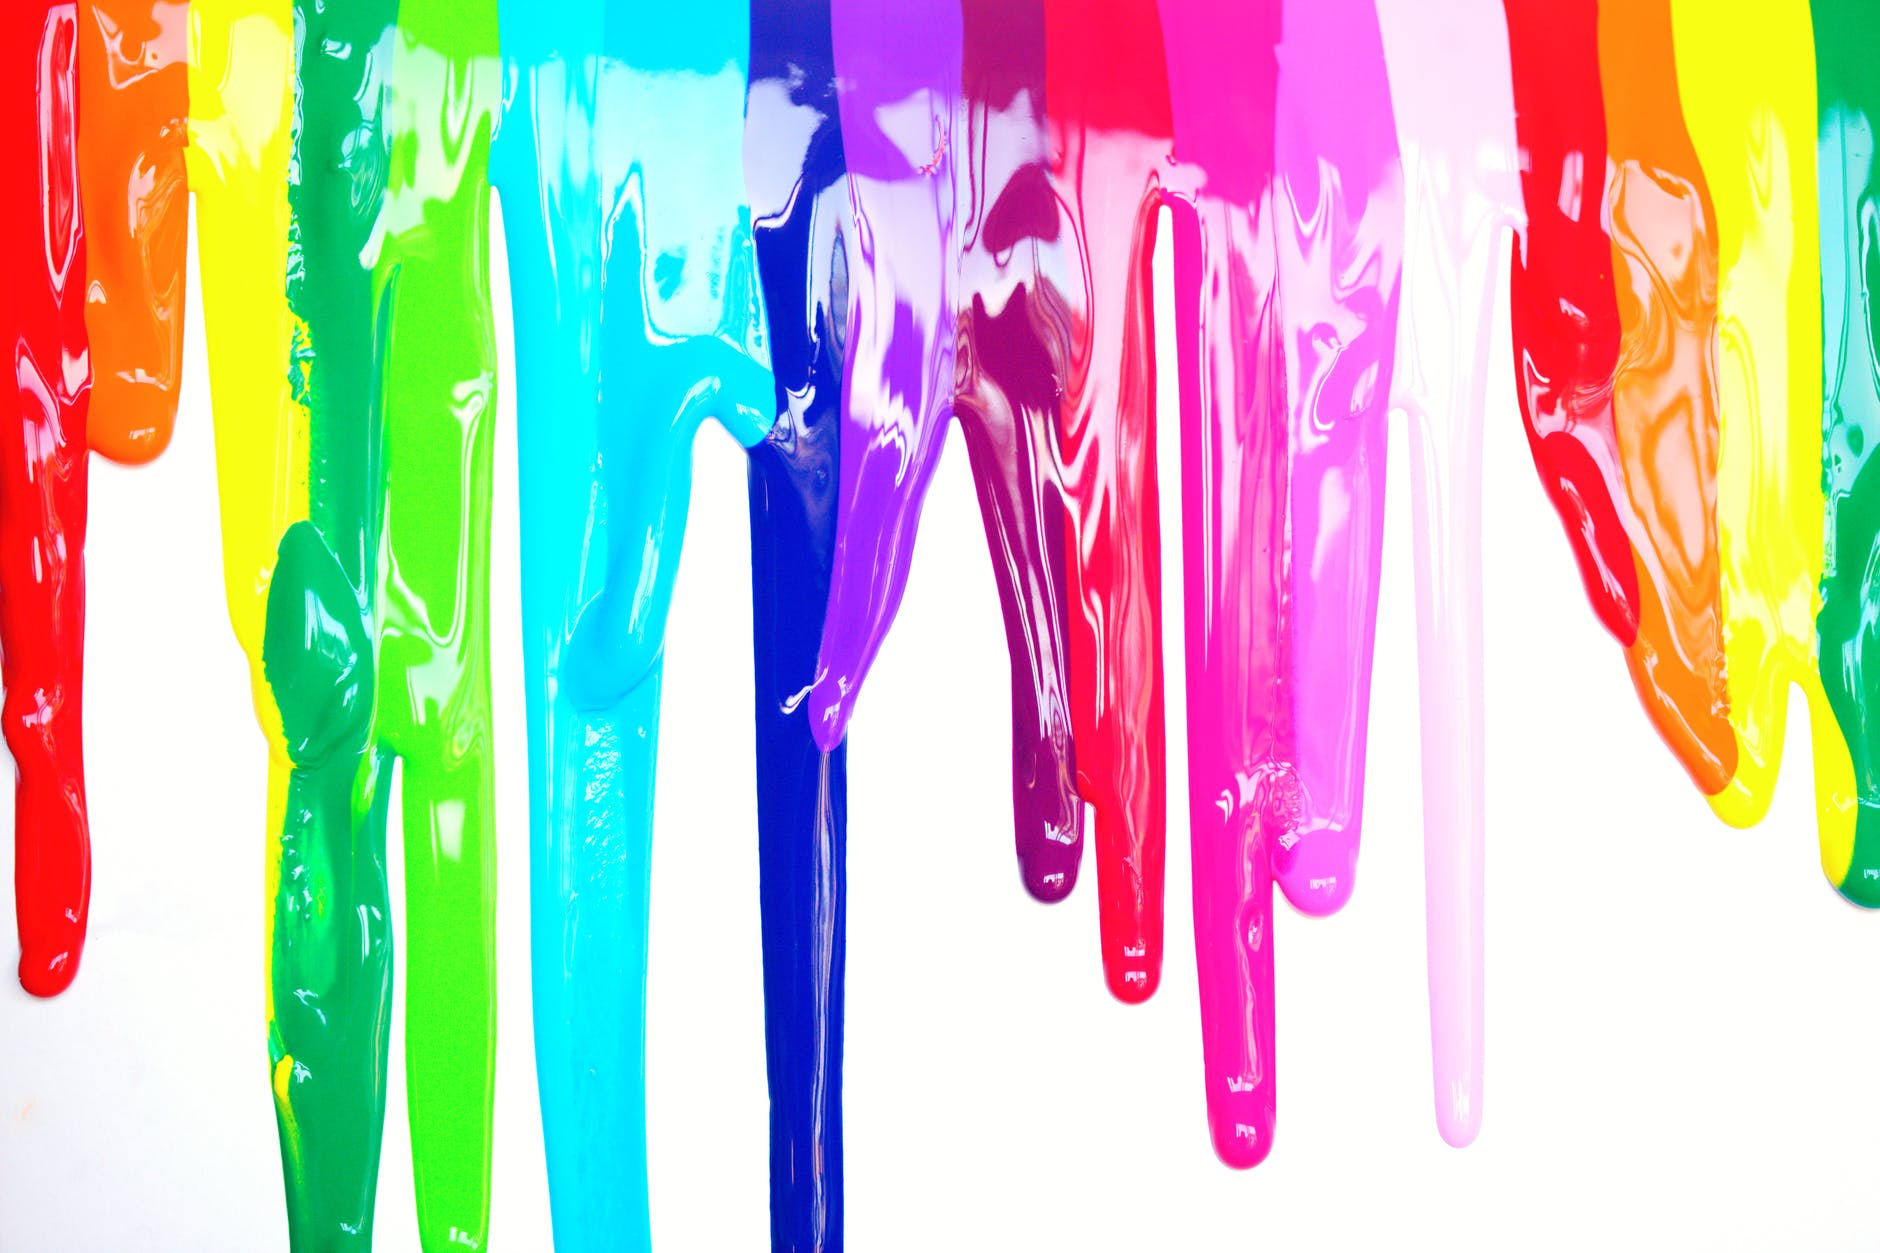 dripping paint in rainbow colors to represent gender diversity and queer rights